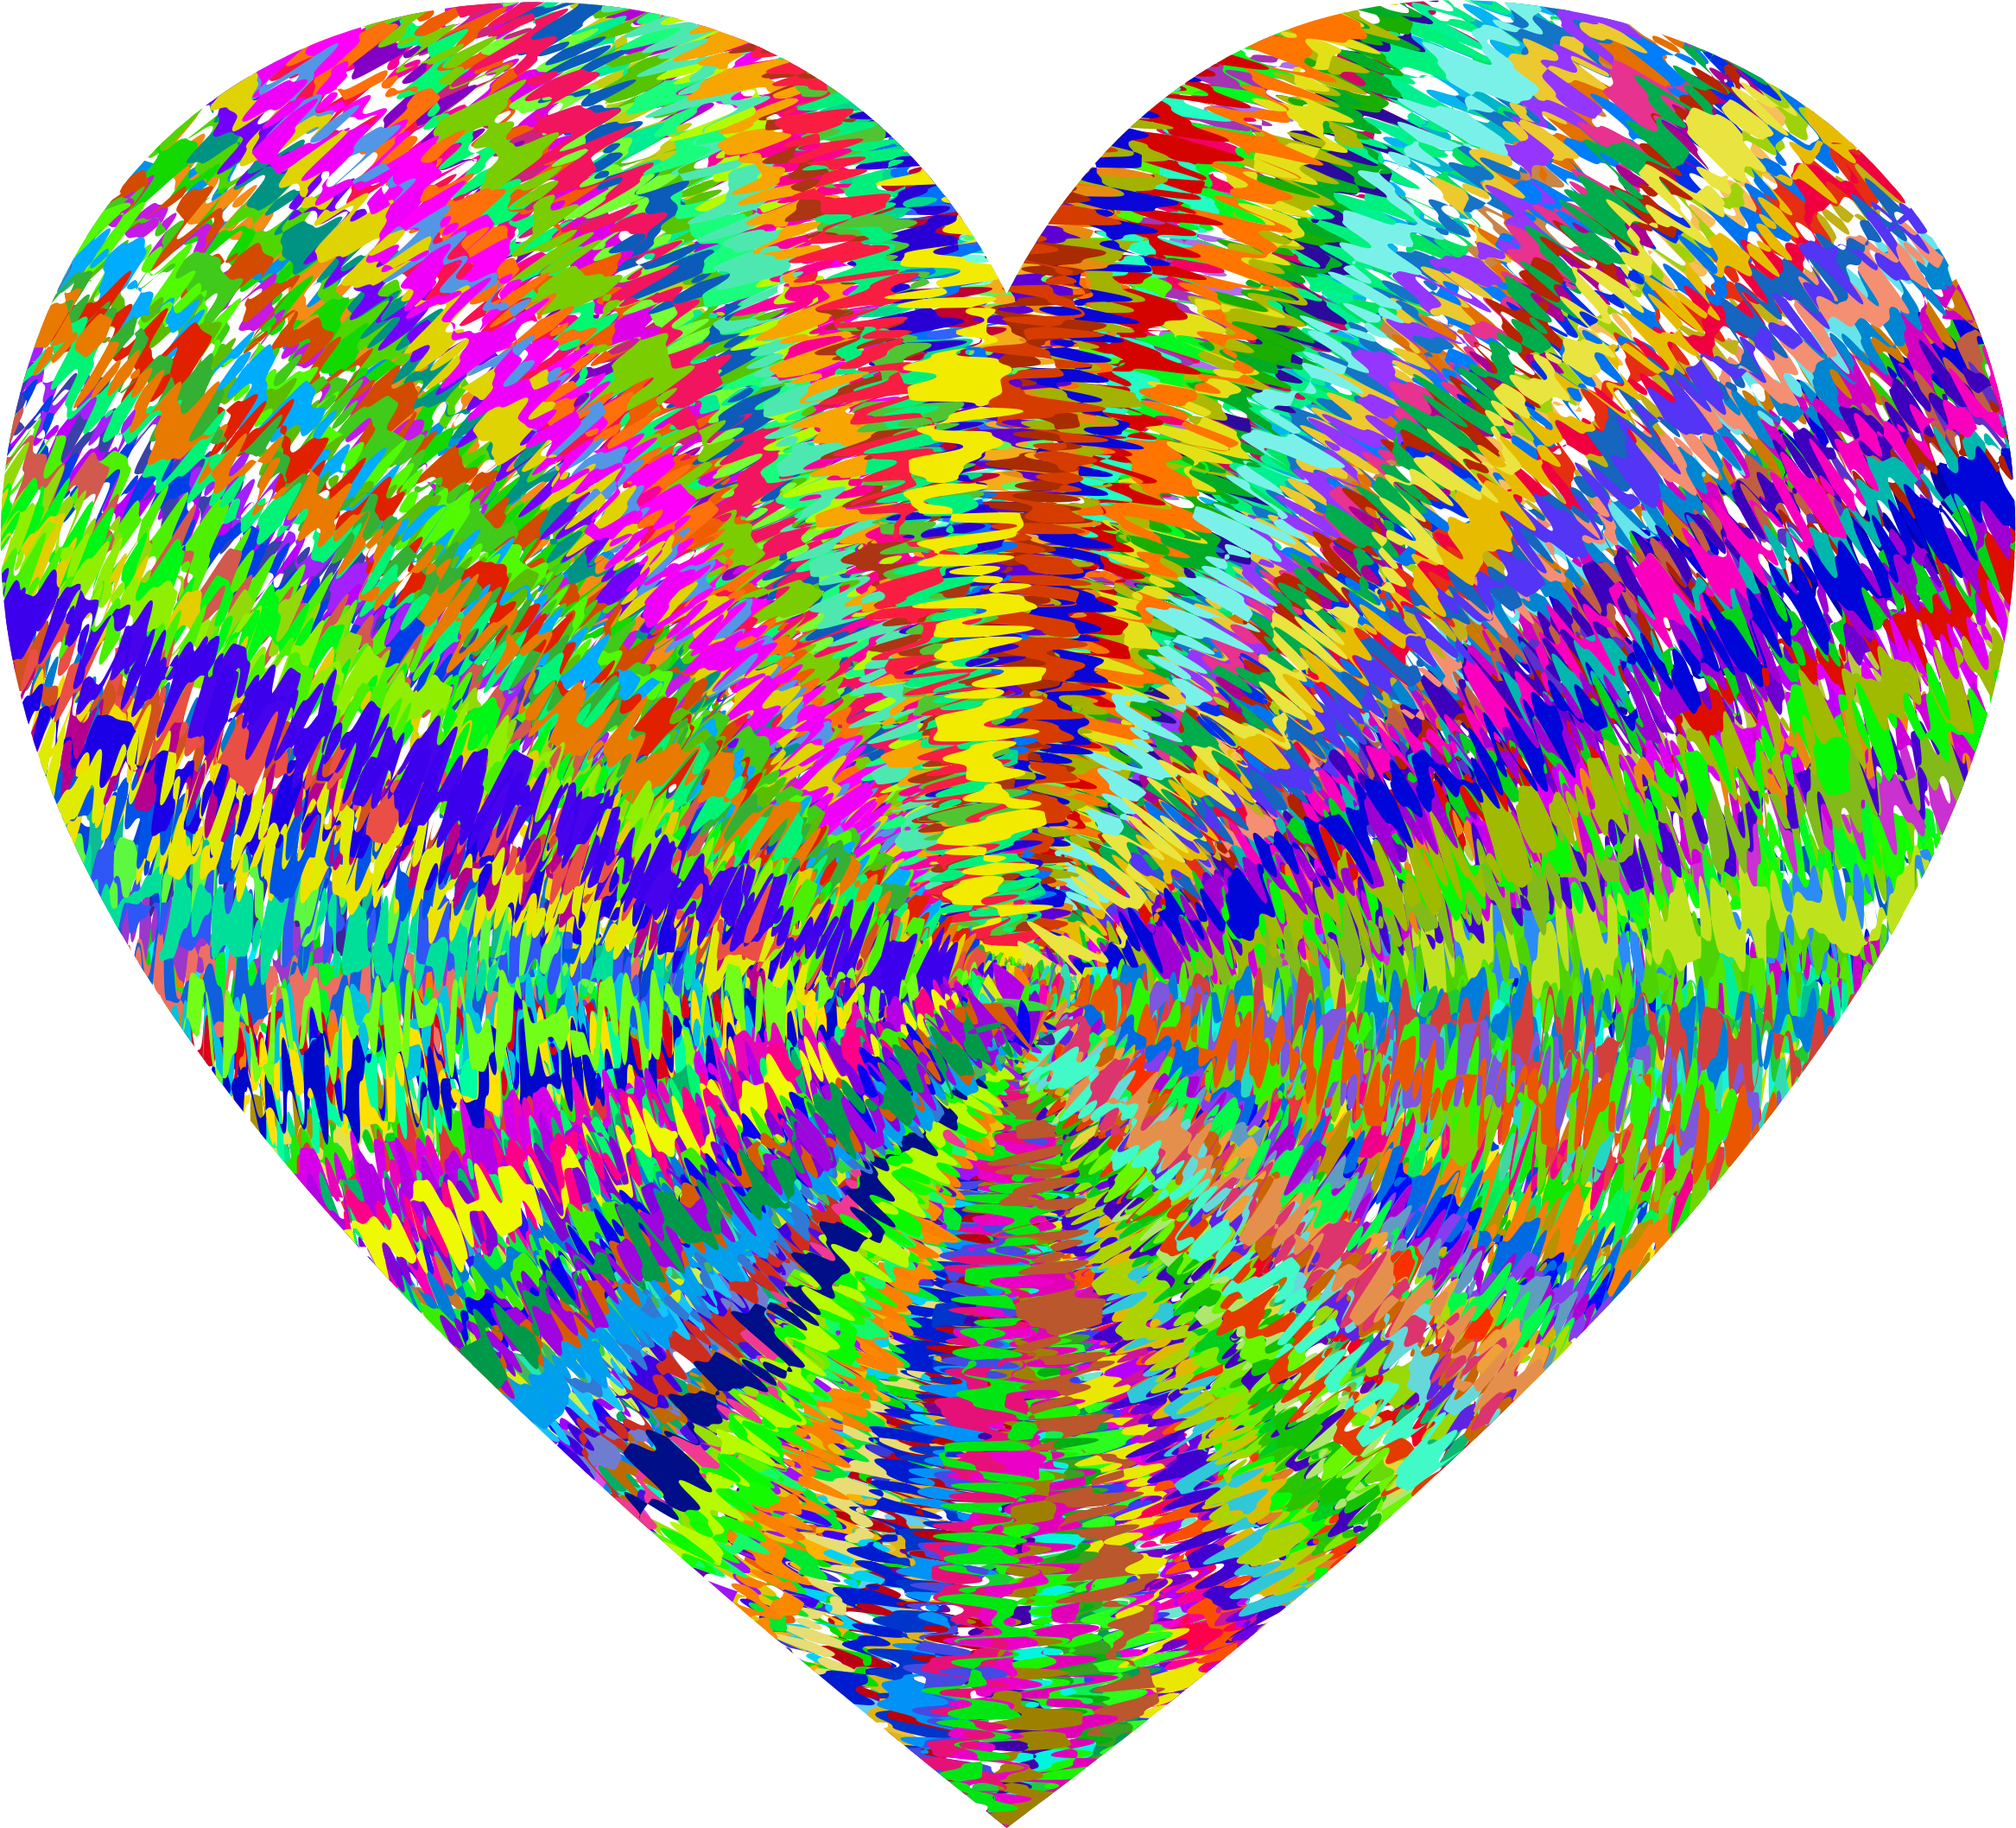 Groovy Heart by GDJ